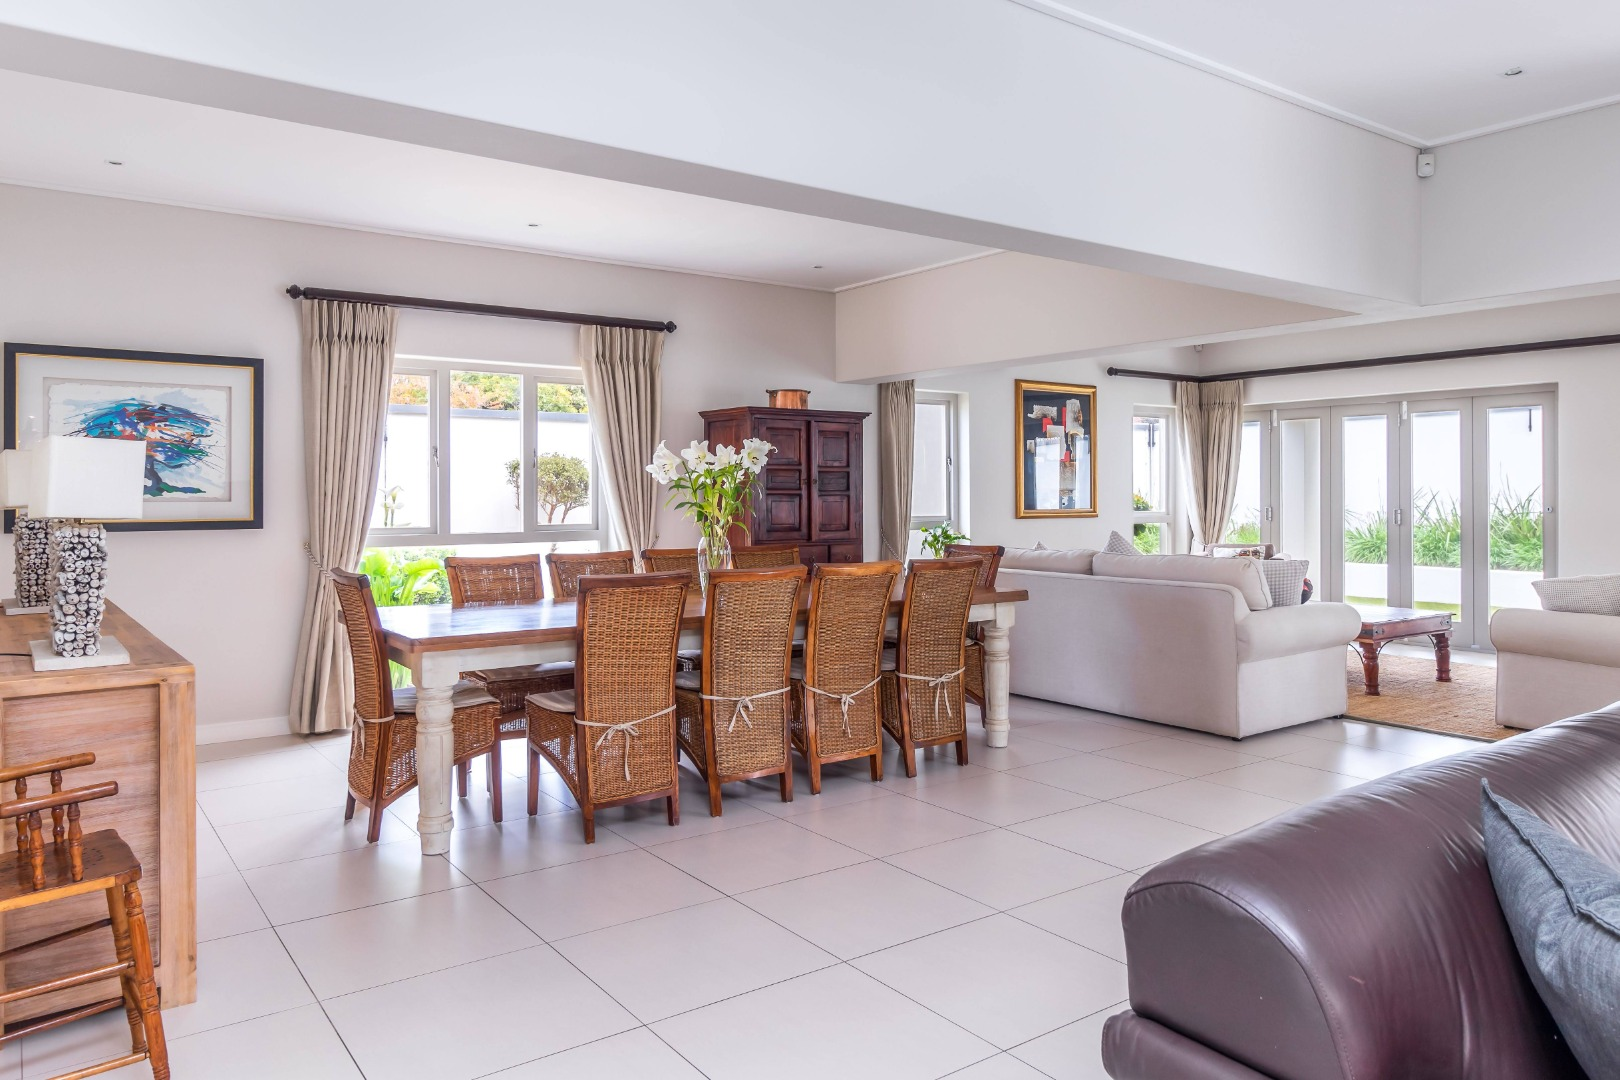 4 Bedroom House For Sale in Tokai